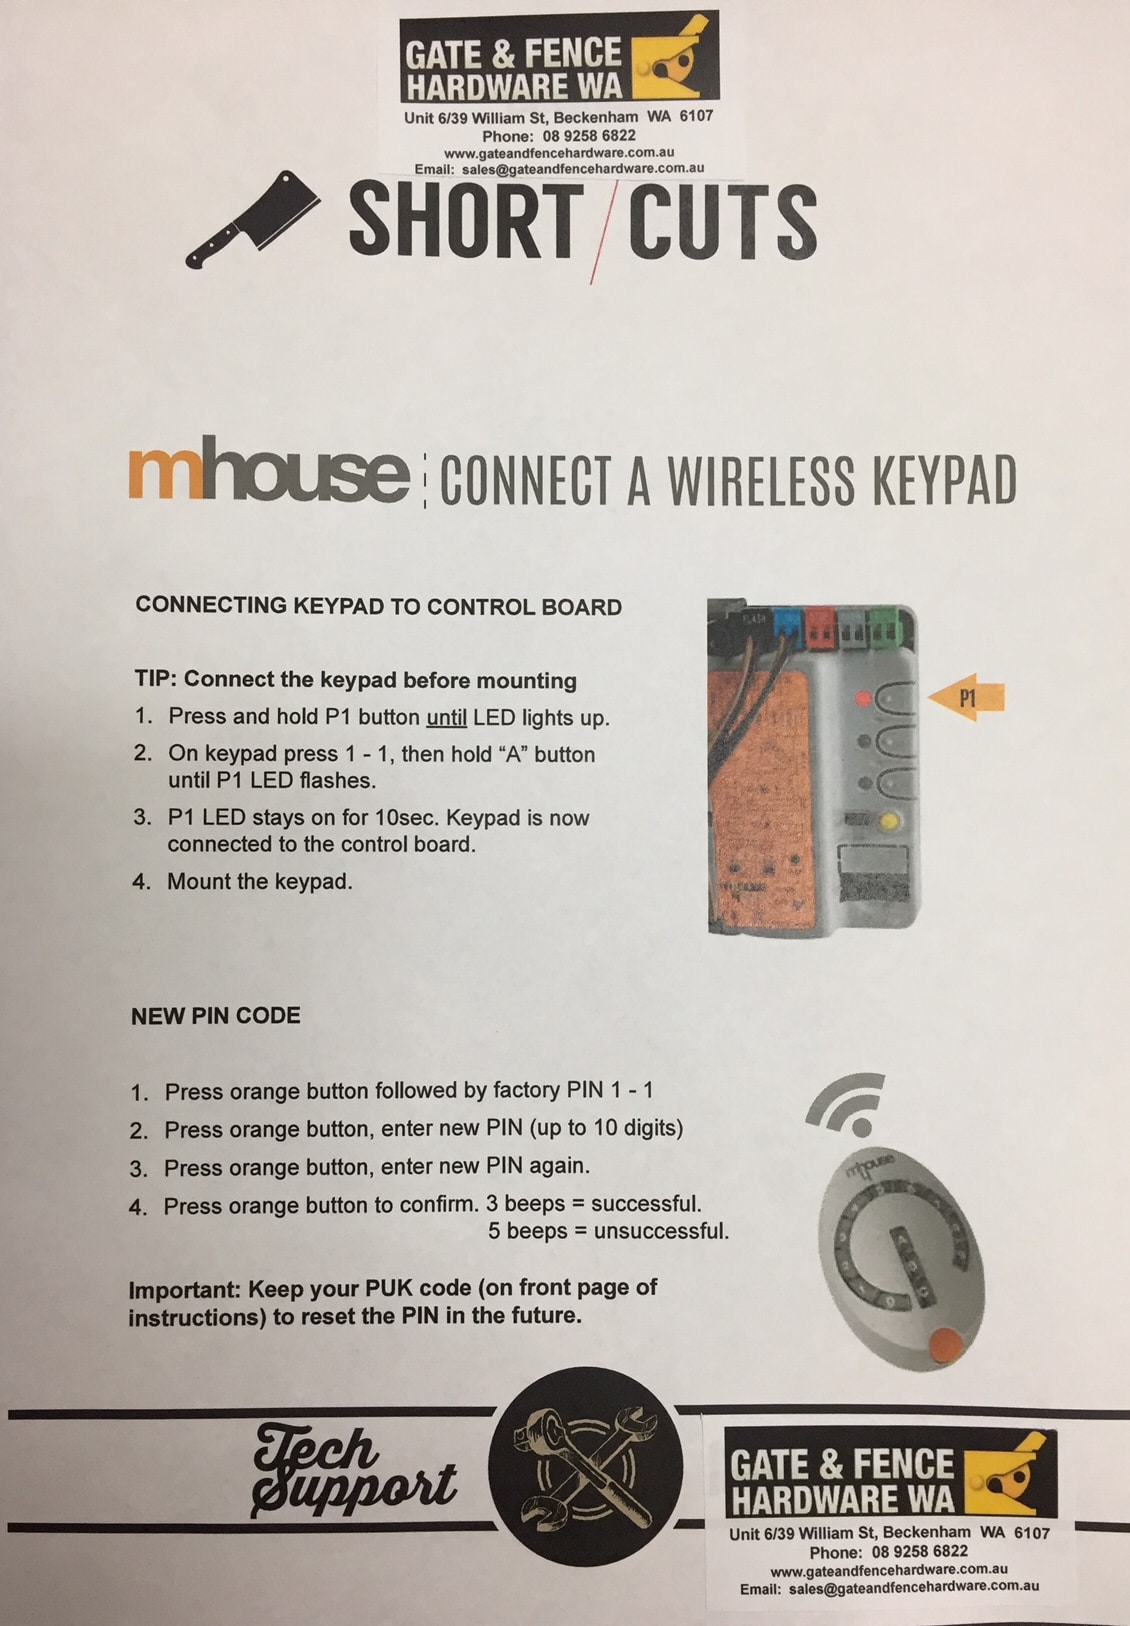 AAC-DS1 Mhouse Wireless keypad Connect Flier